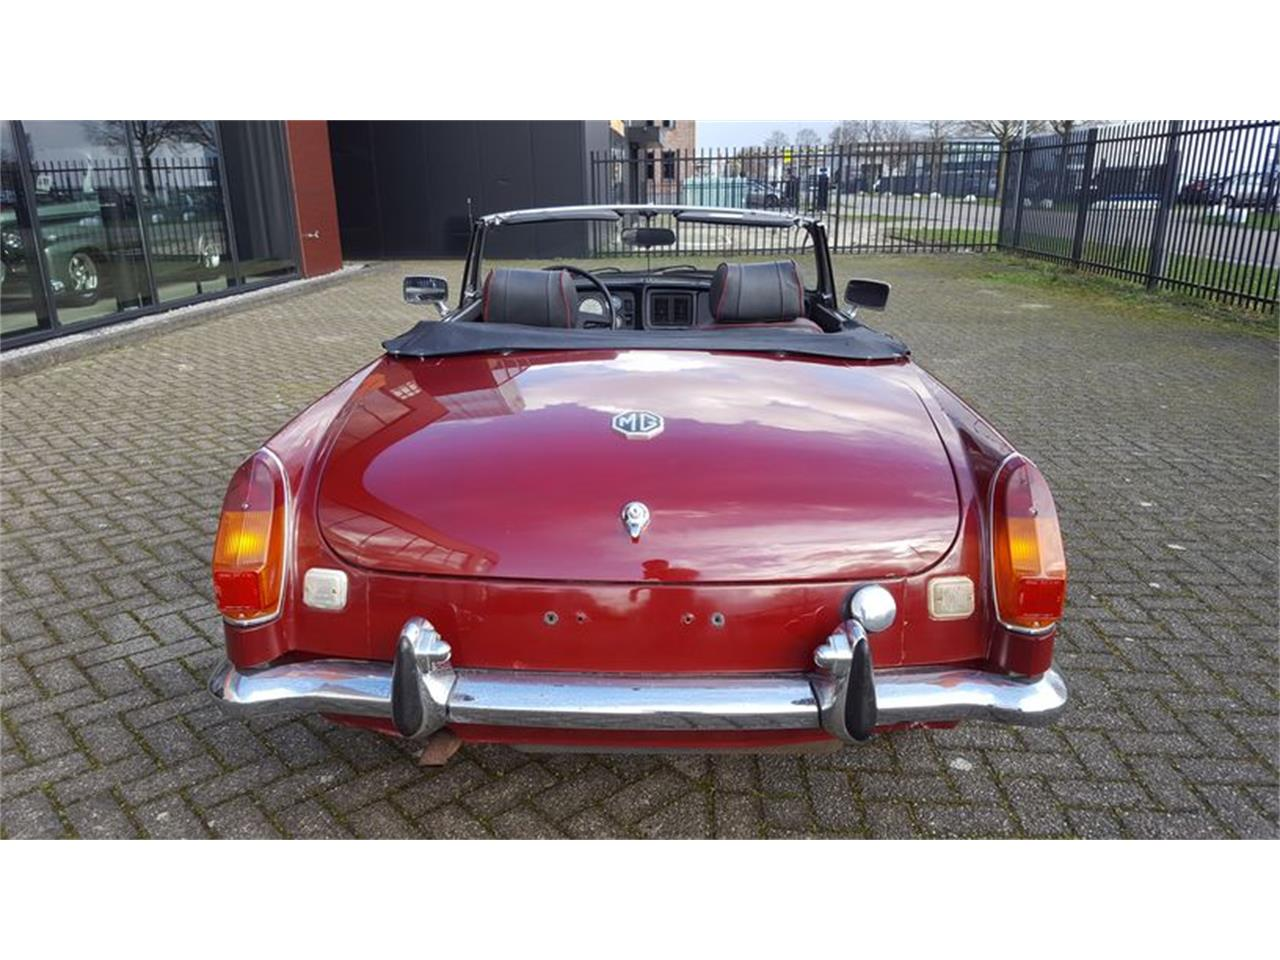 1978 MG MGB (CC-1361730) for sale in Waalwijk, Noord-Brabant